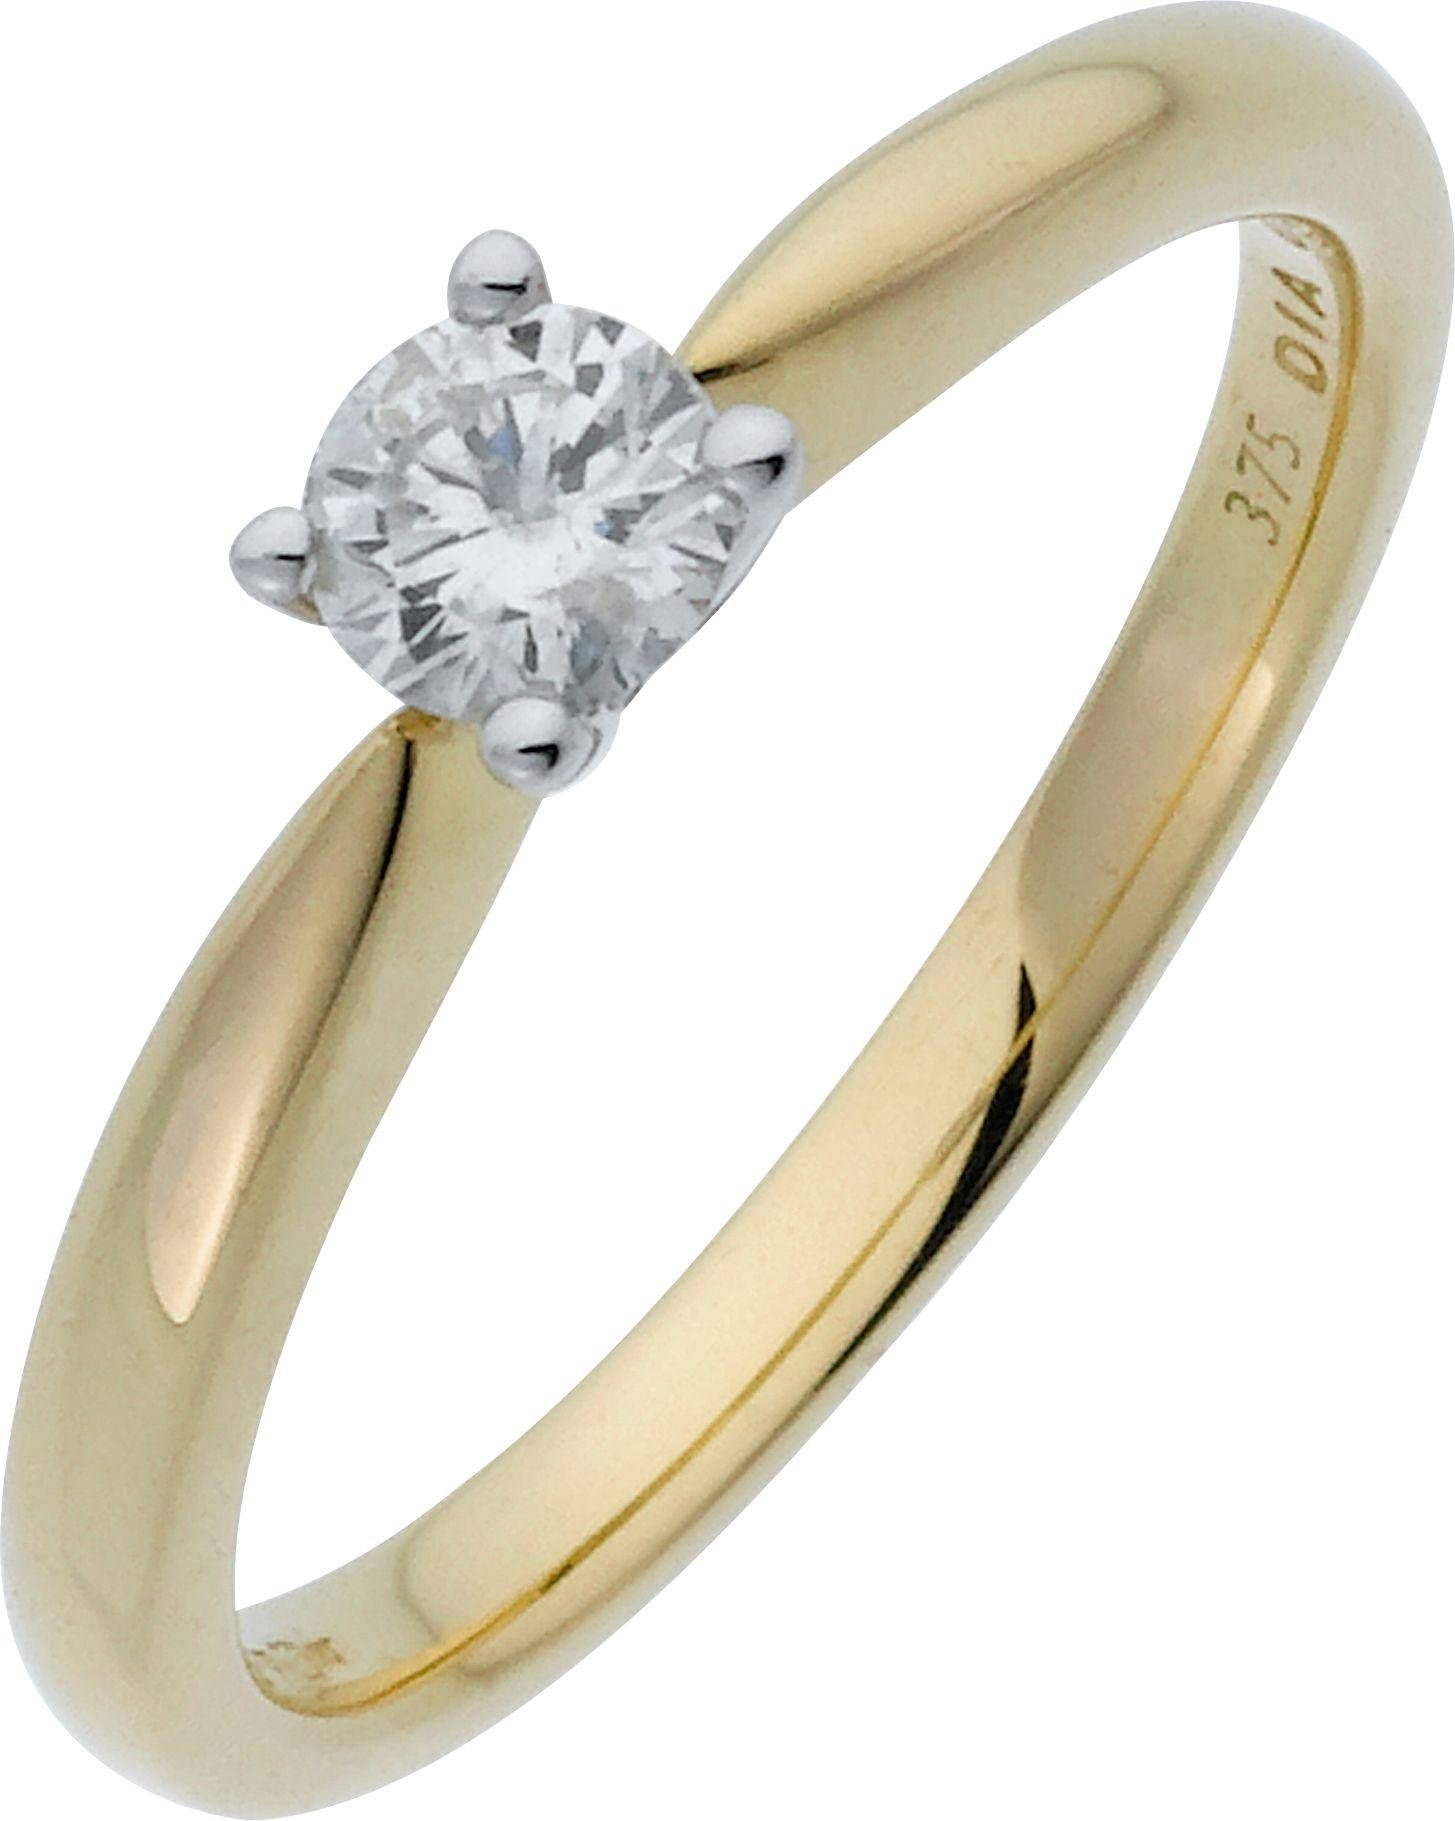 18 Carat Rose Gold: 025 Carat Diamond